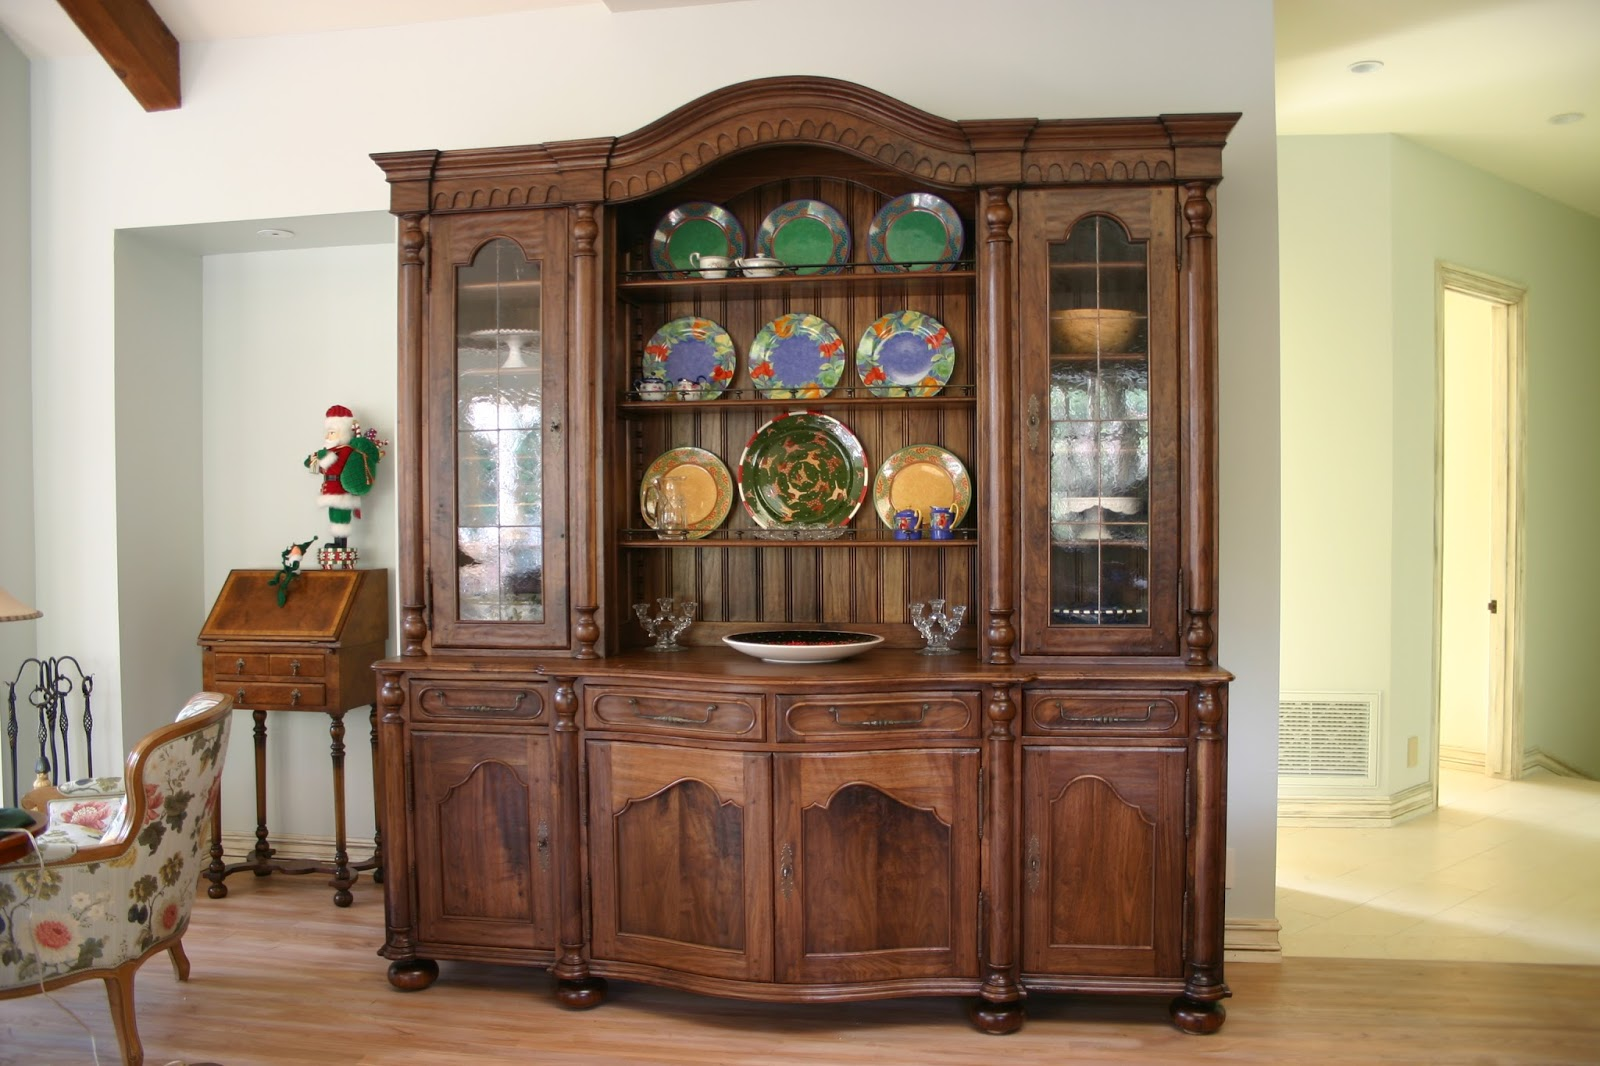 China Cabinet Designs - Bahay OFW